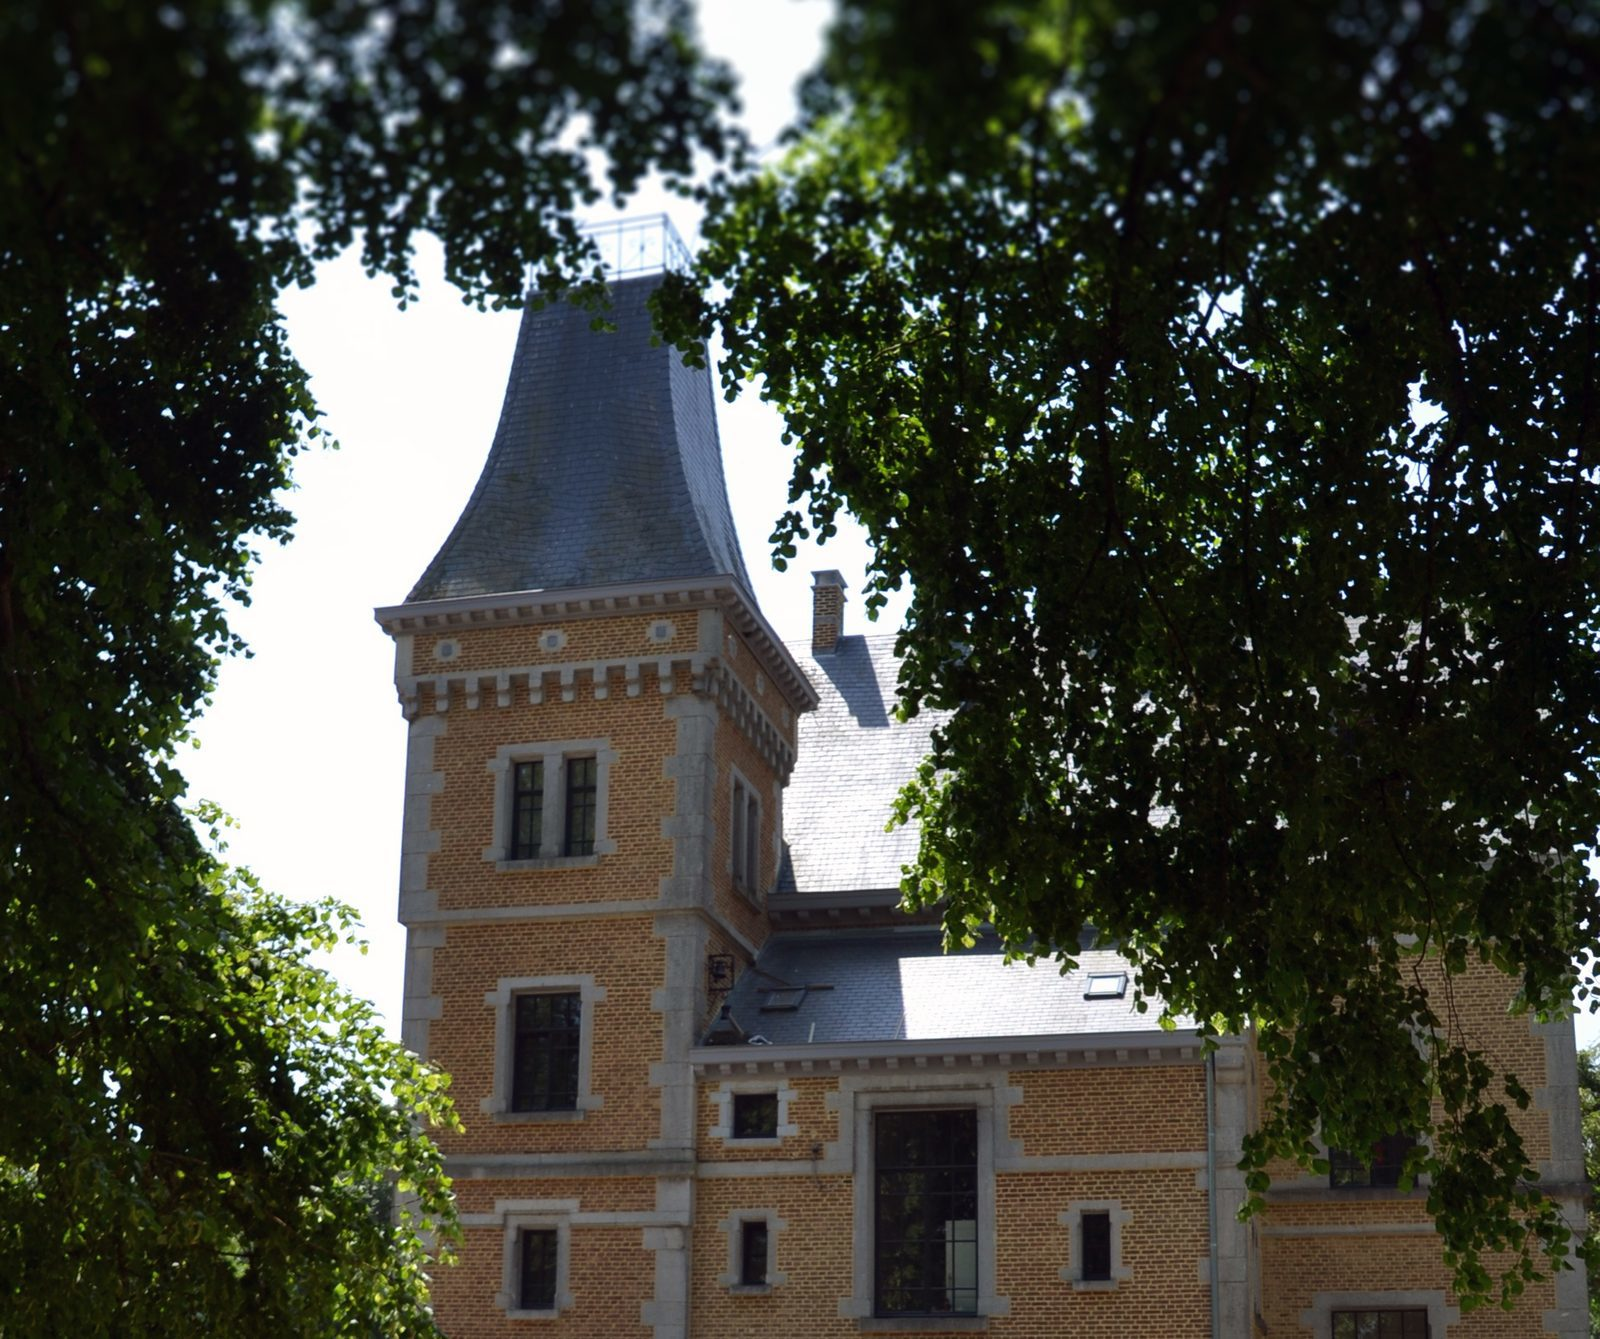 Staying at Chateau Beausaint